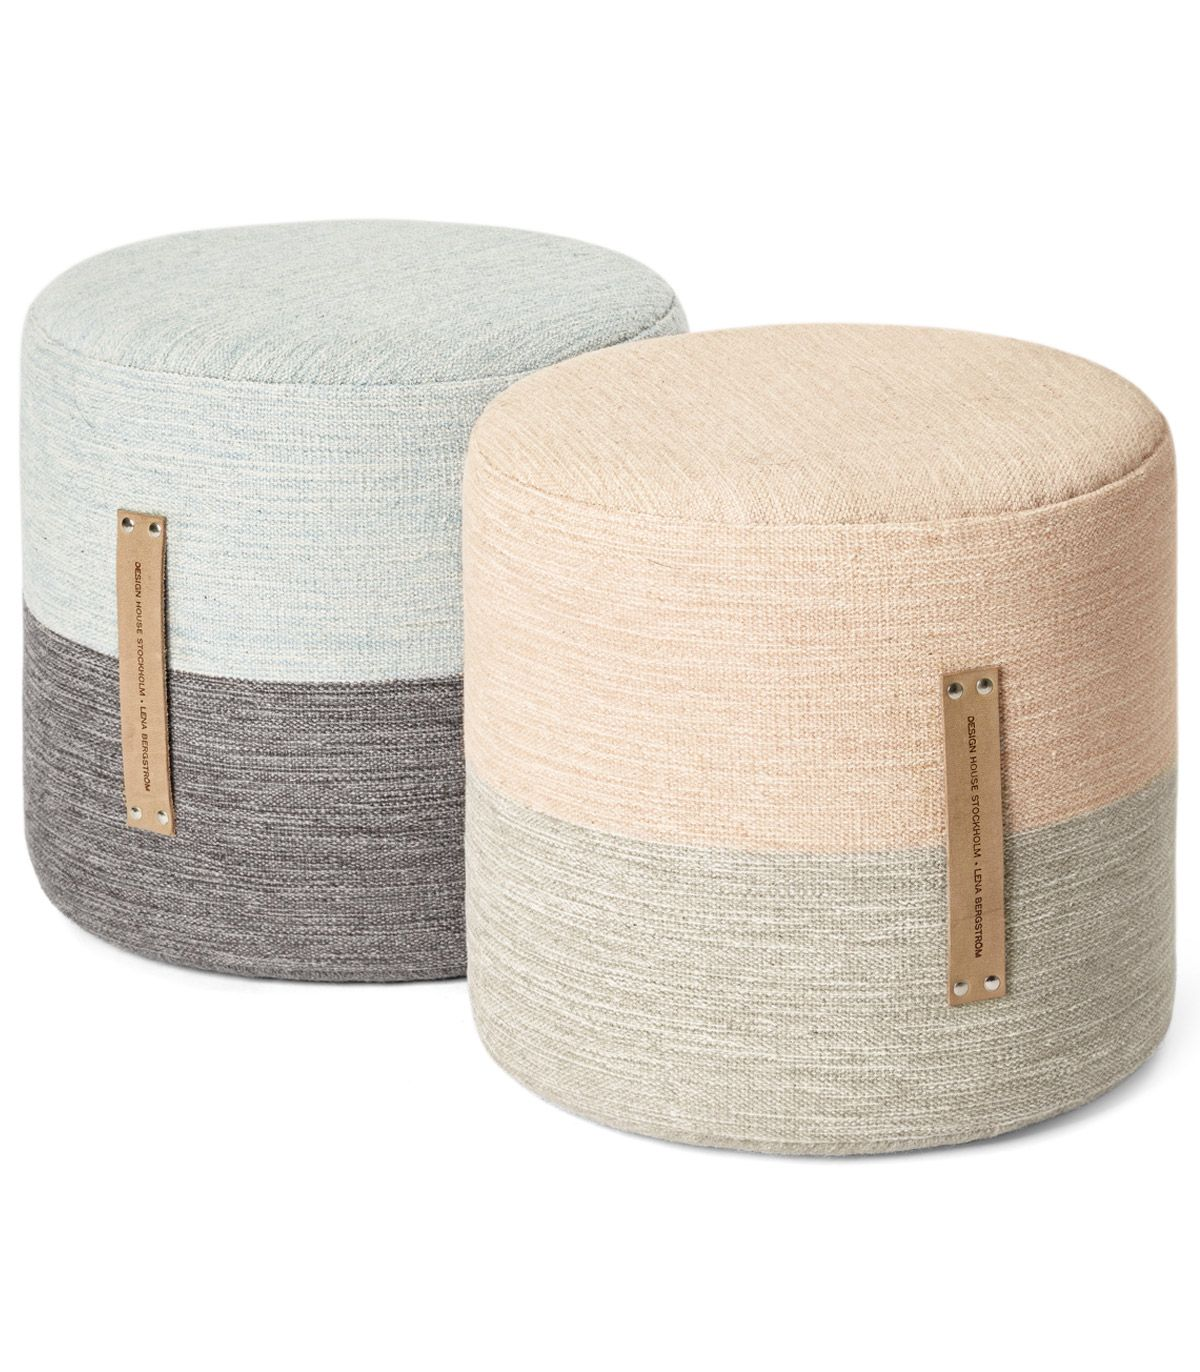 Pouf Exterieur Made Pouf Fields Pink Beige Design House Stockholm